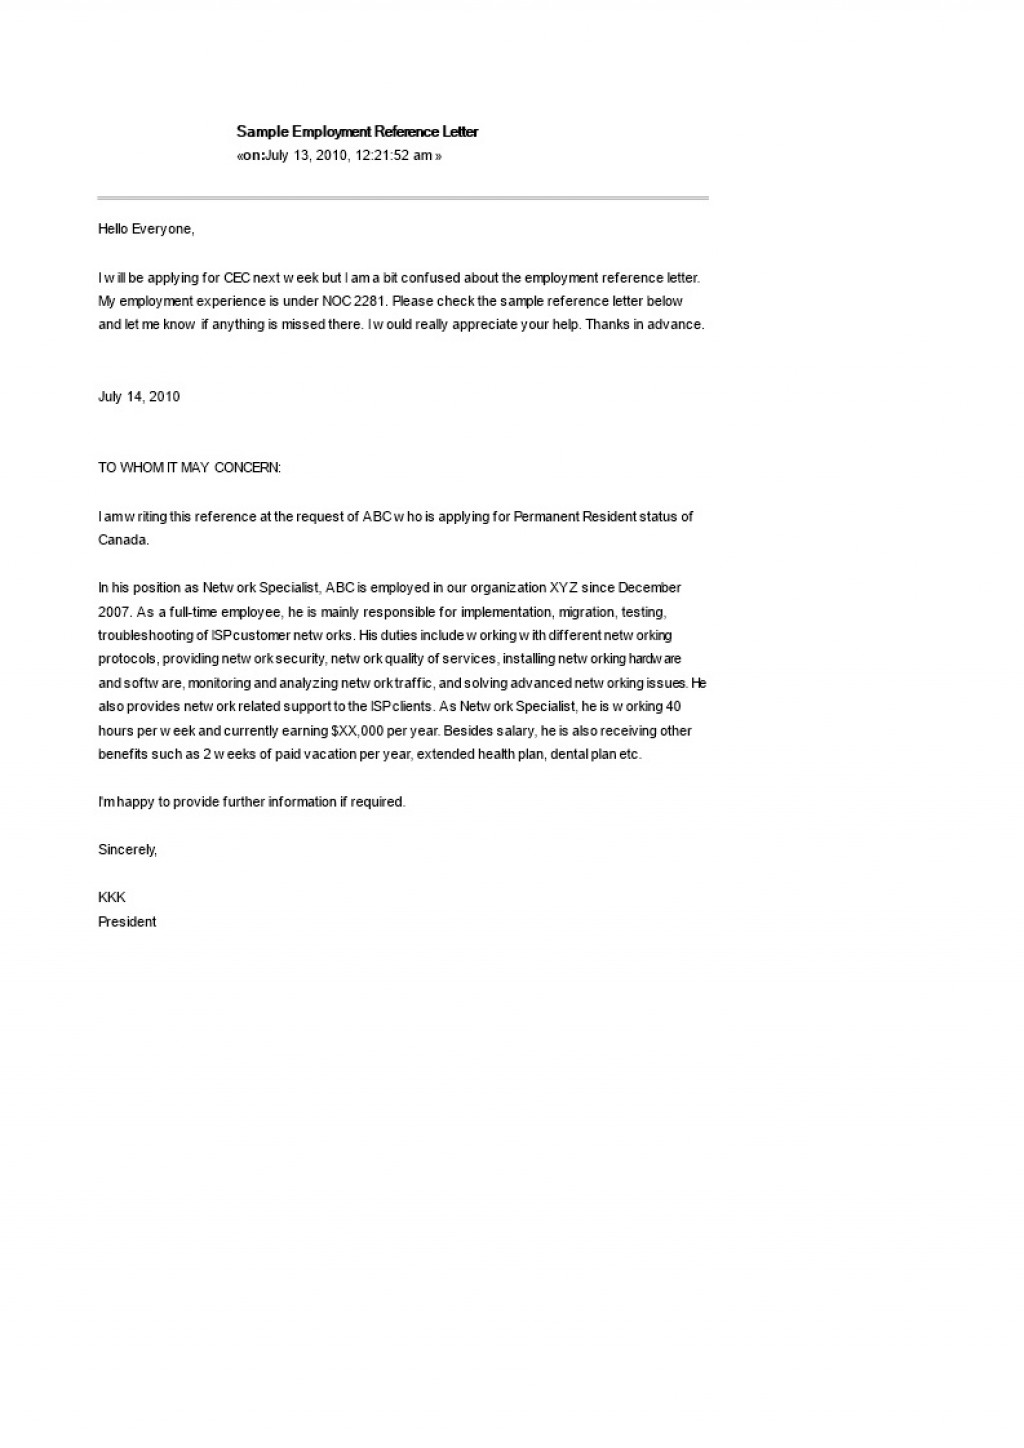 Employees Reference Letter Sample from www.addictionary.org